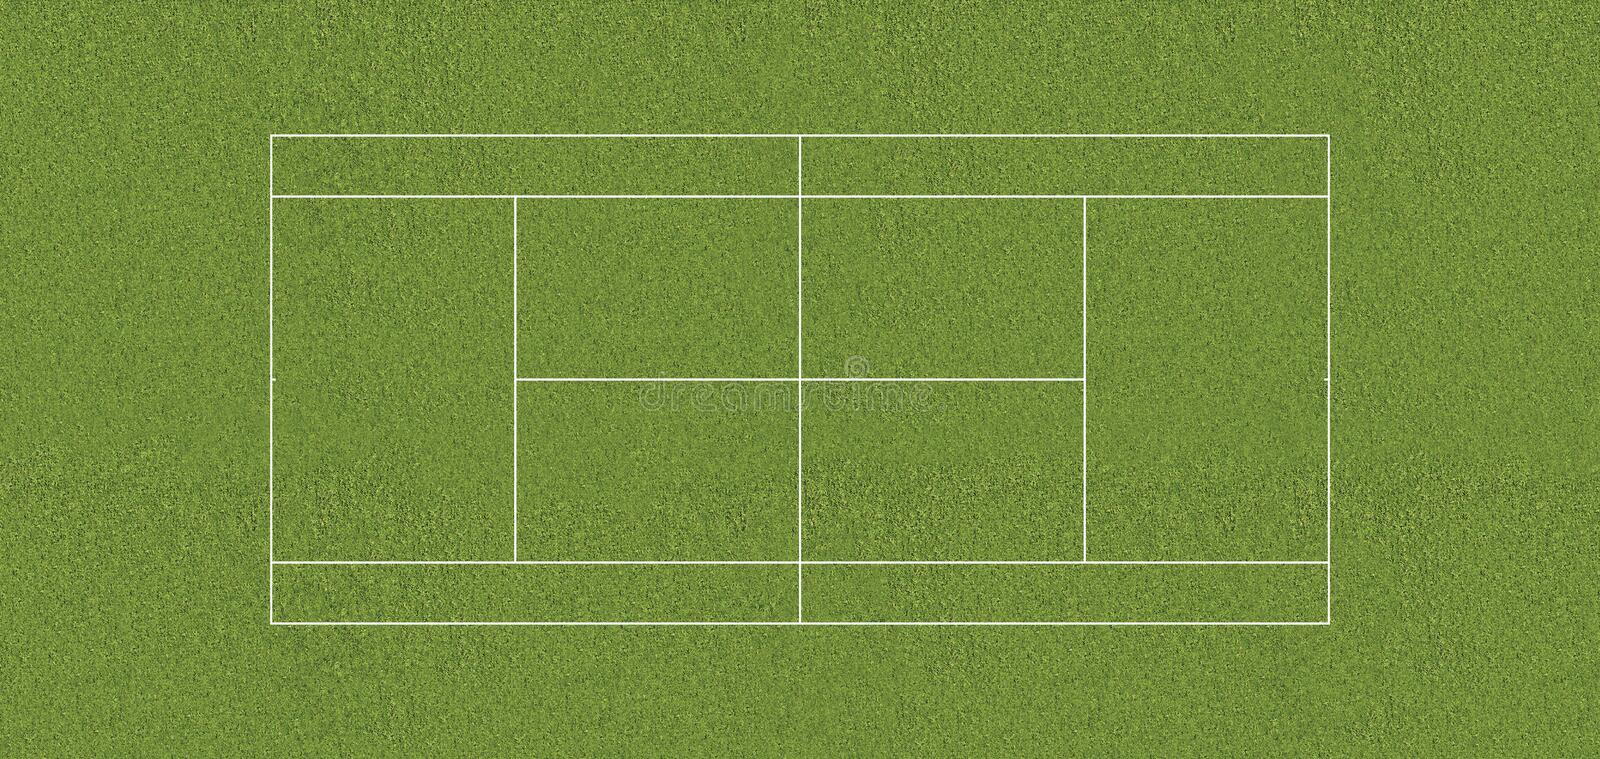 Regulation tennis court GRASS stock illustration